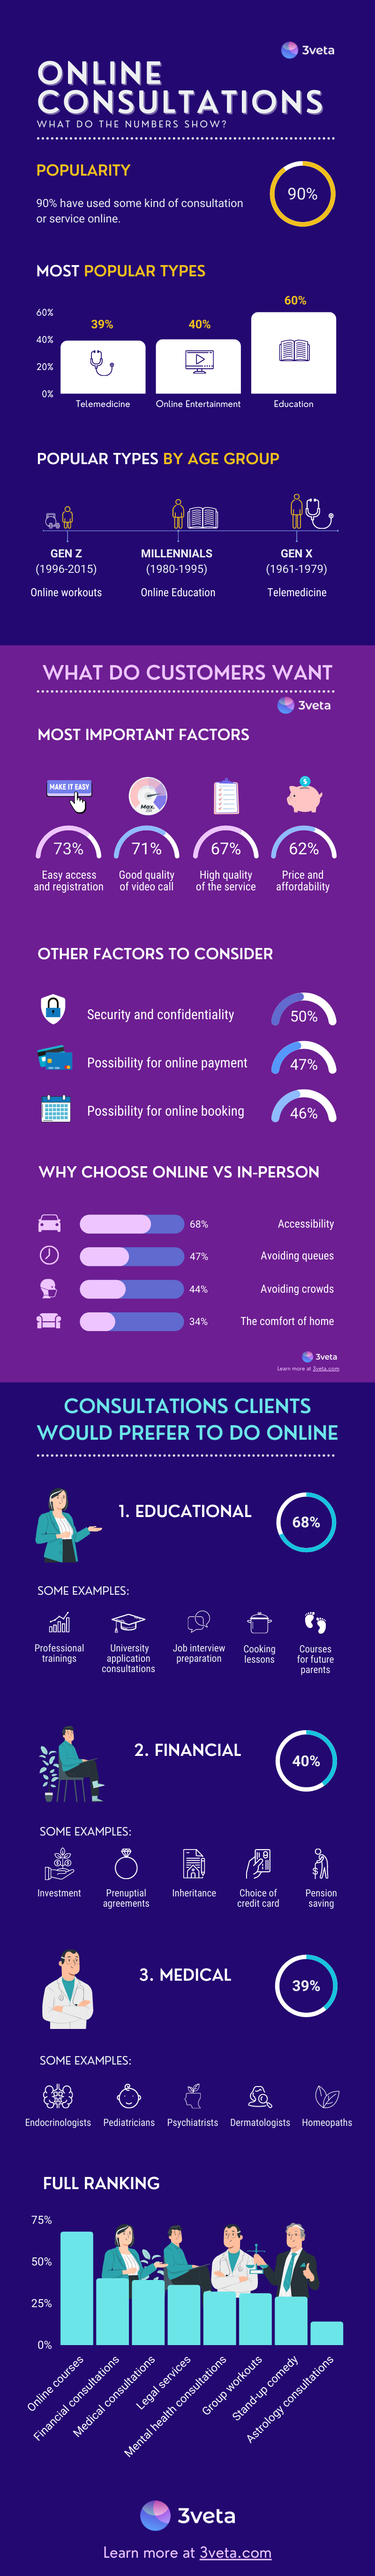 Online Consultations - What Do the Numbers Show?